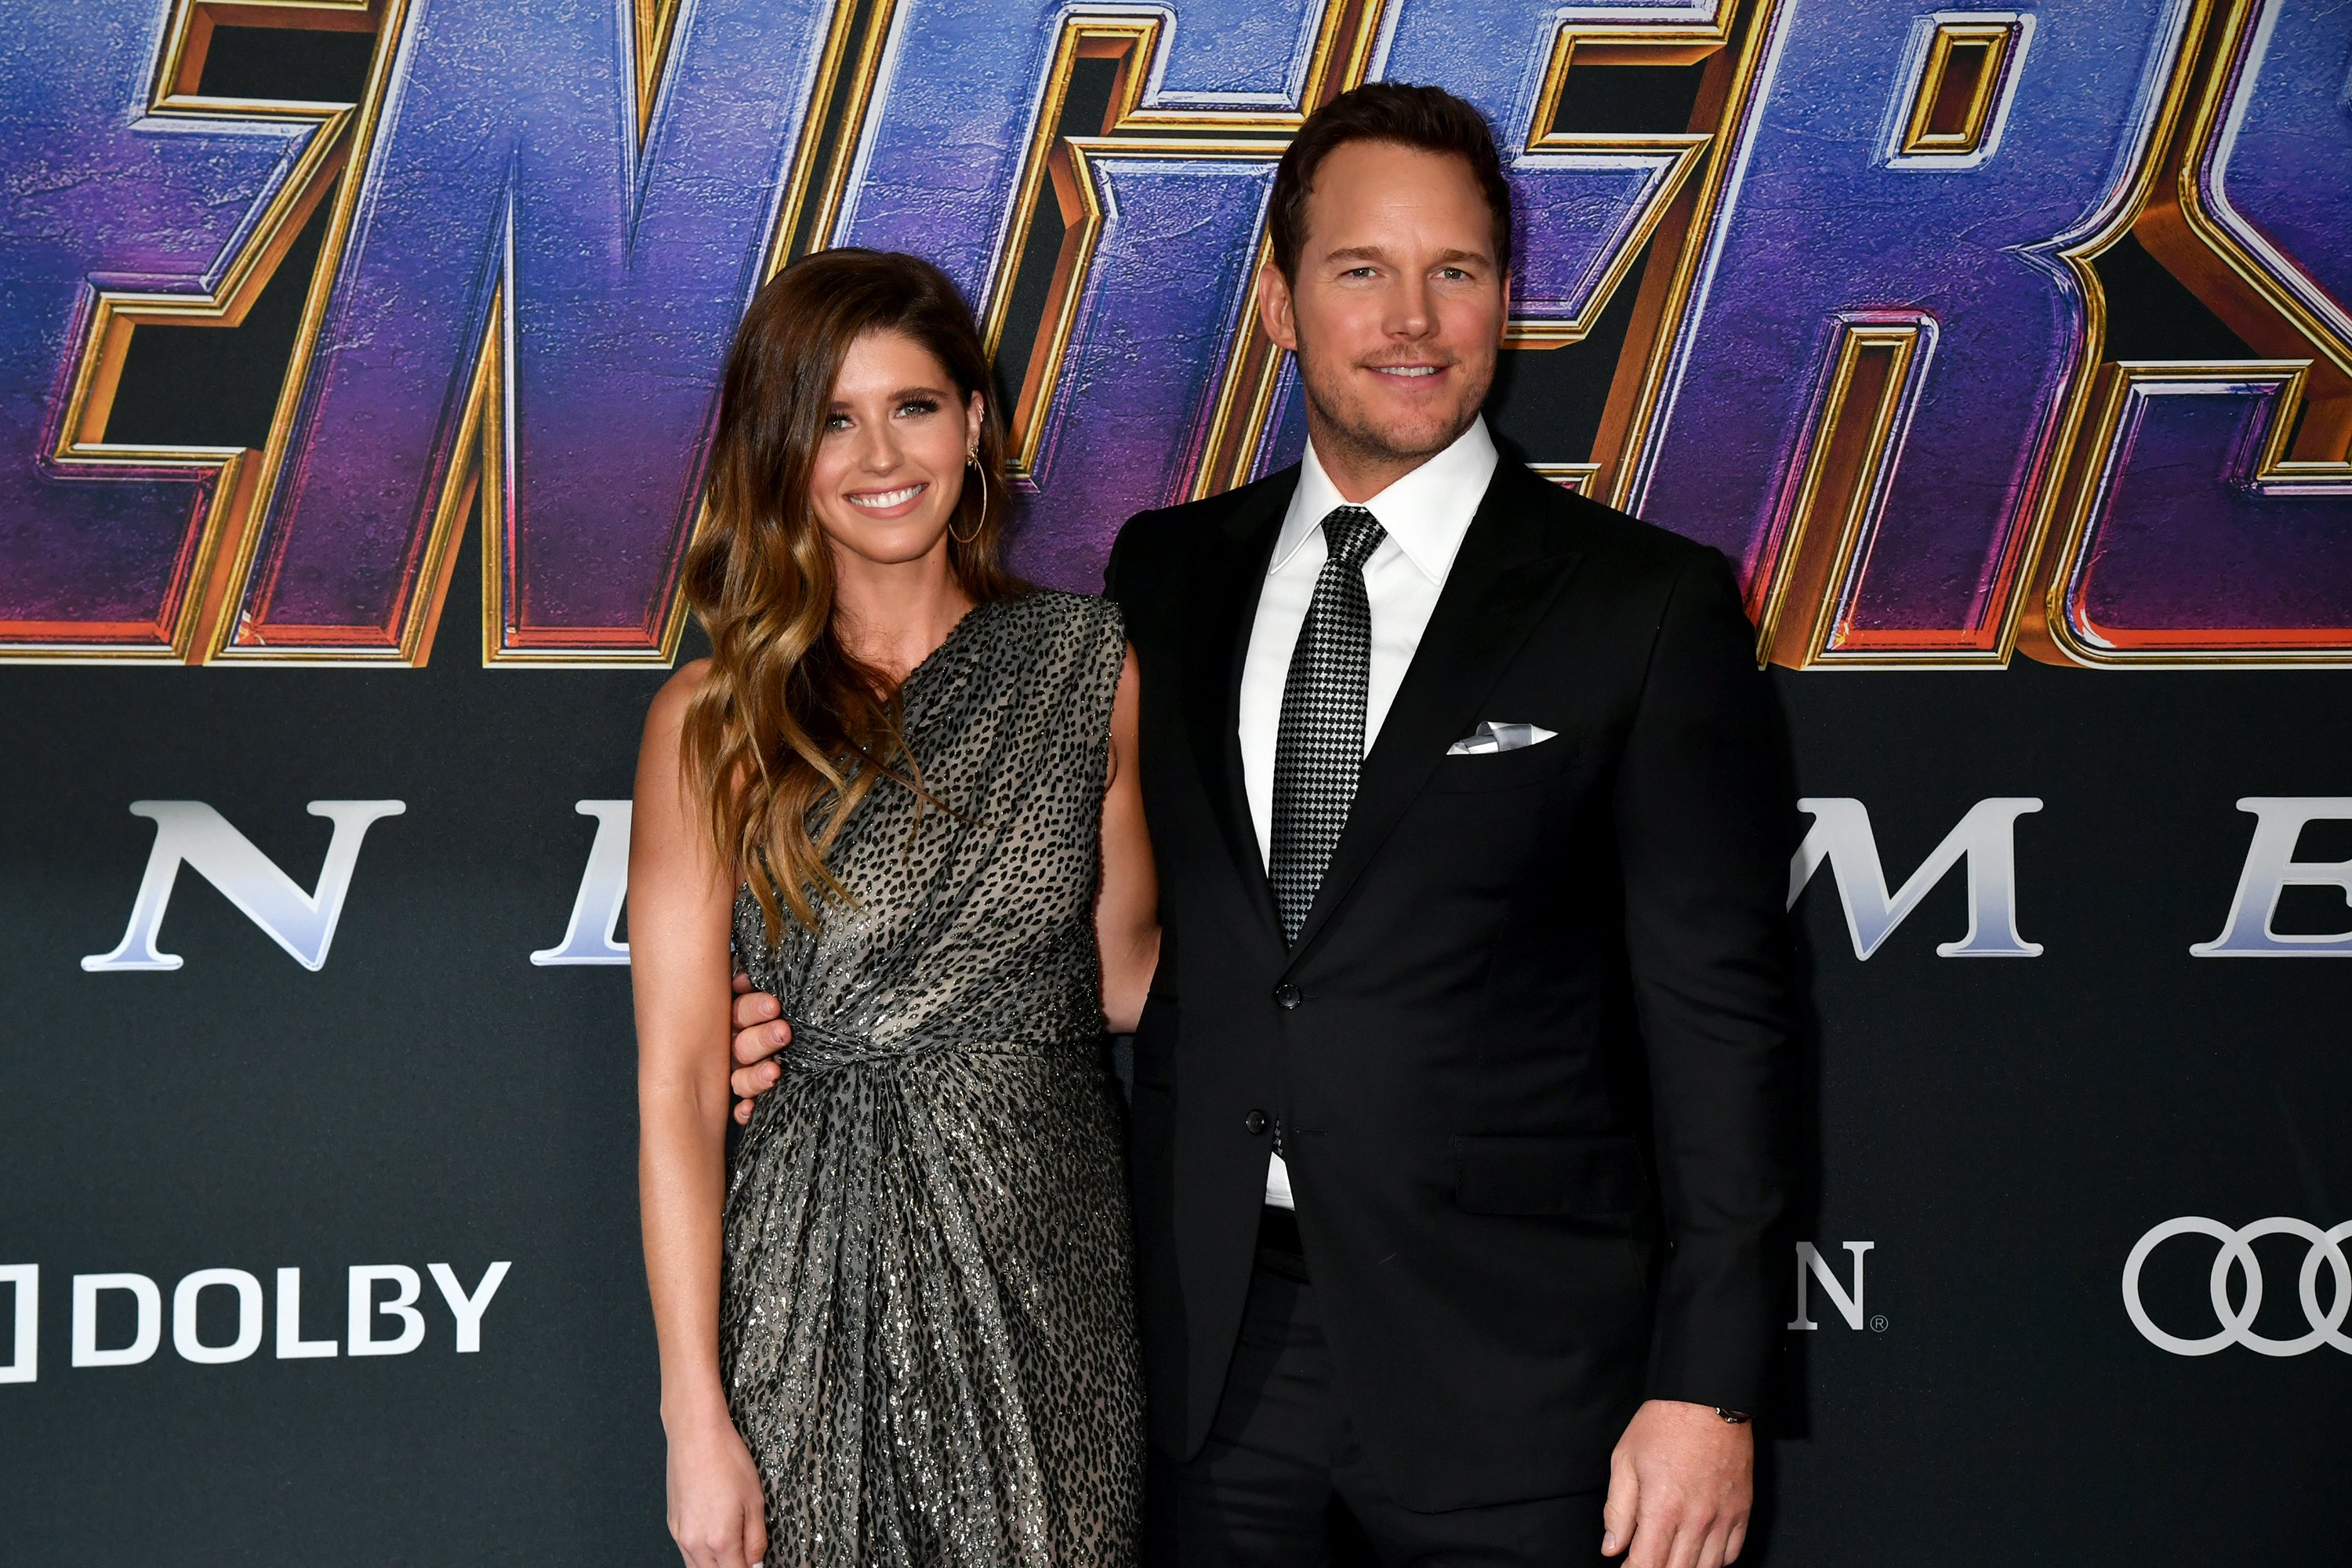 """Katherine Schwarzenegger and Chris Pratt attends the World Premiere of Walt Disney Studios Motion Pictures """"Avengers: Endgame"""" at Los Angeles Convention Center on April 22, 2019 in Los Angeles, California.   Source: Getty Images"""